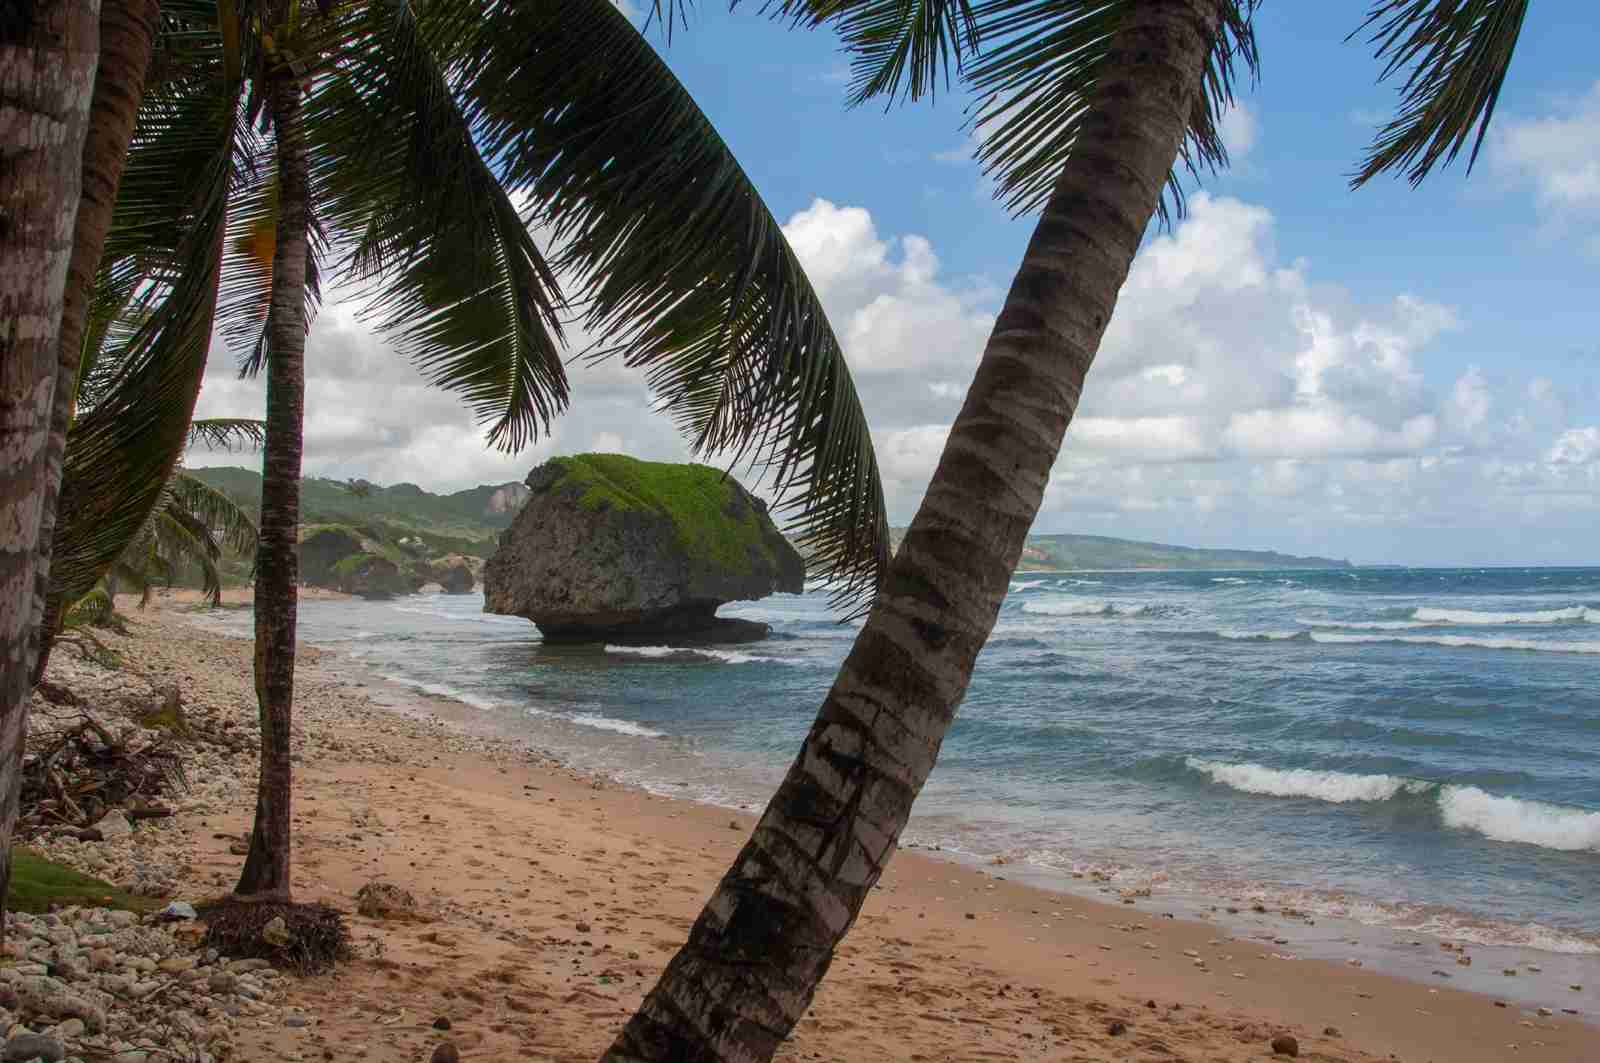 The Soup Bowl at Bathsheba beach. (Photo by Avalon/Universal Images Group/Getty Images)